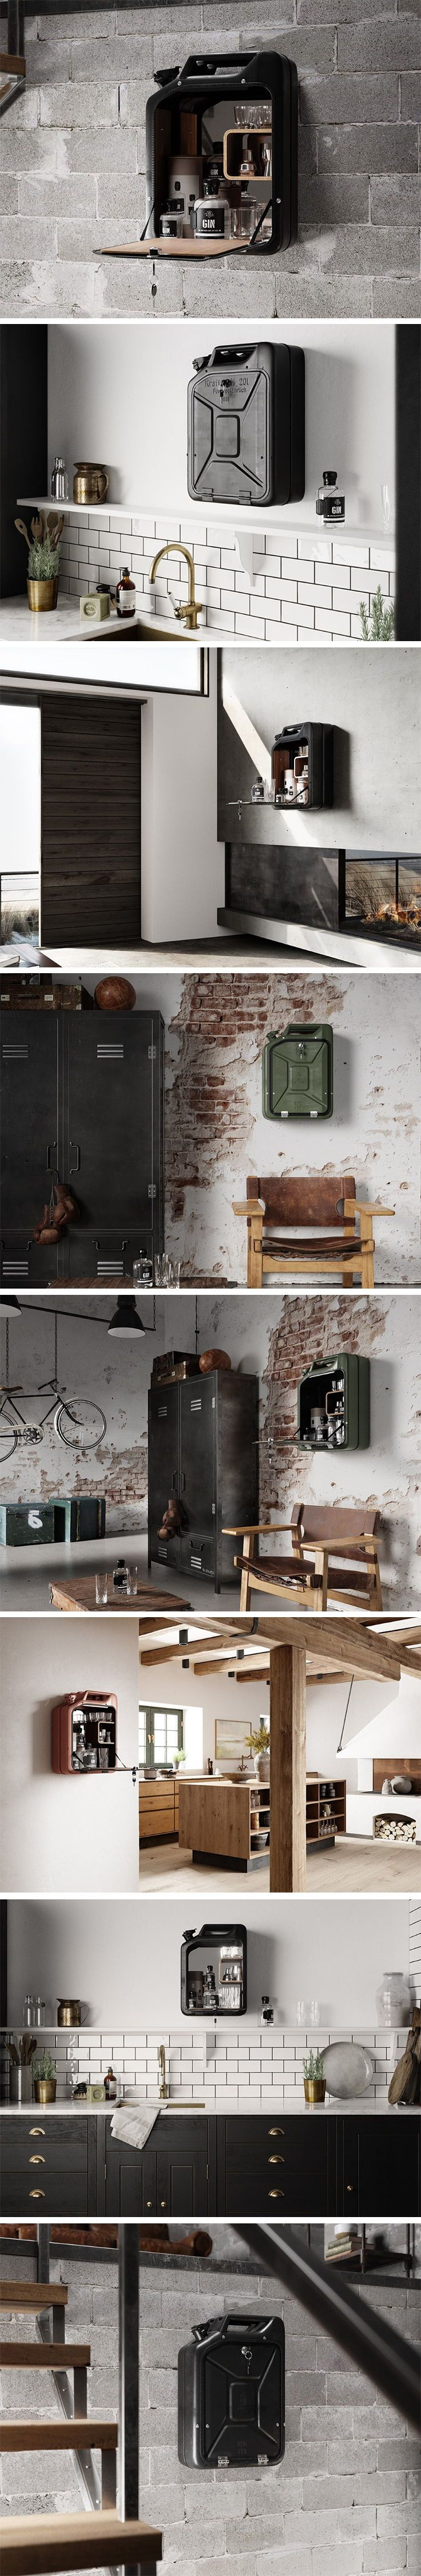 The Danish Fuel Tank Bar Cabinet uses Jerry Cans from World War II and turns them into outwardly quirky, but inwardly lavish mini-bars. The old jerry cans are first sand-blasted to remove the old coat of paint and whatever rust it may have collected from the past 70 years. The door is then laser-cut out of the can with a sheer precision that allows it to open and shut perfectly. The cans are then powder-coated and baked with a new layer of rust-resistive paint.